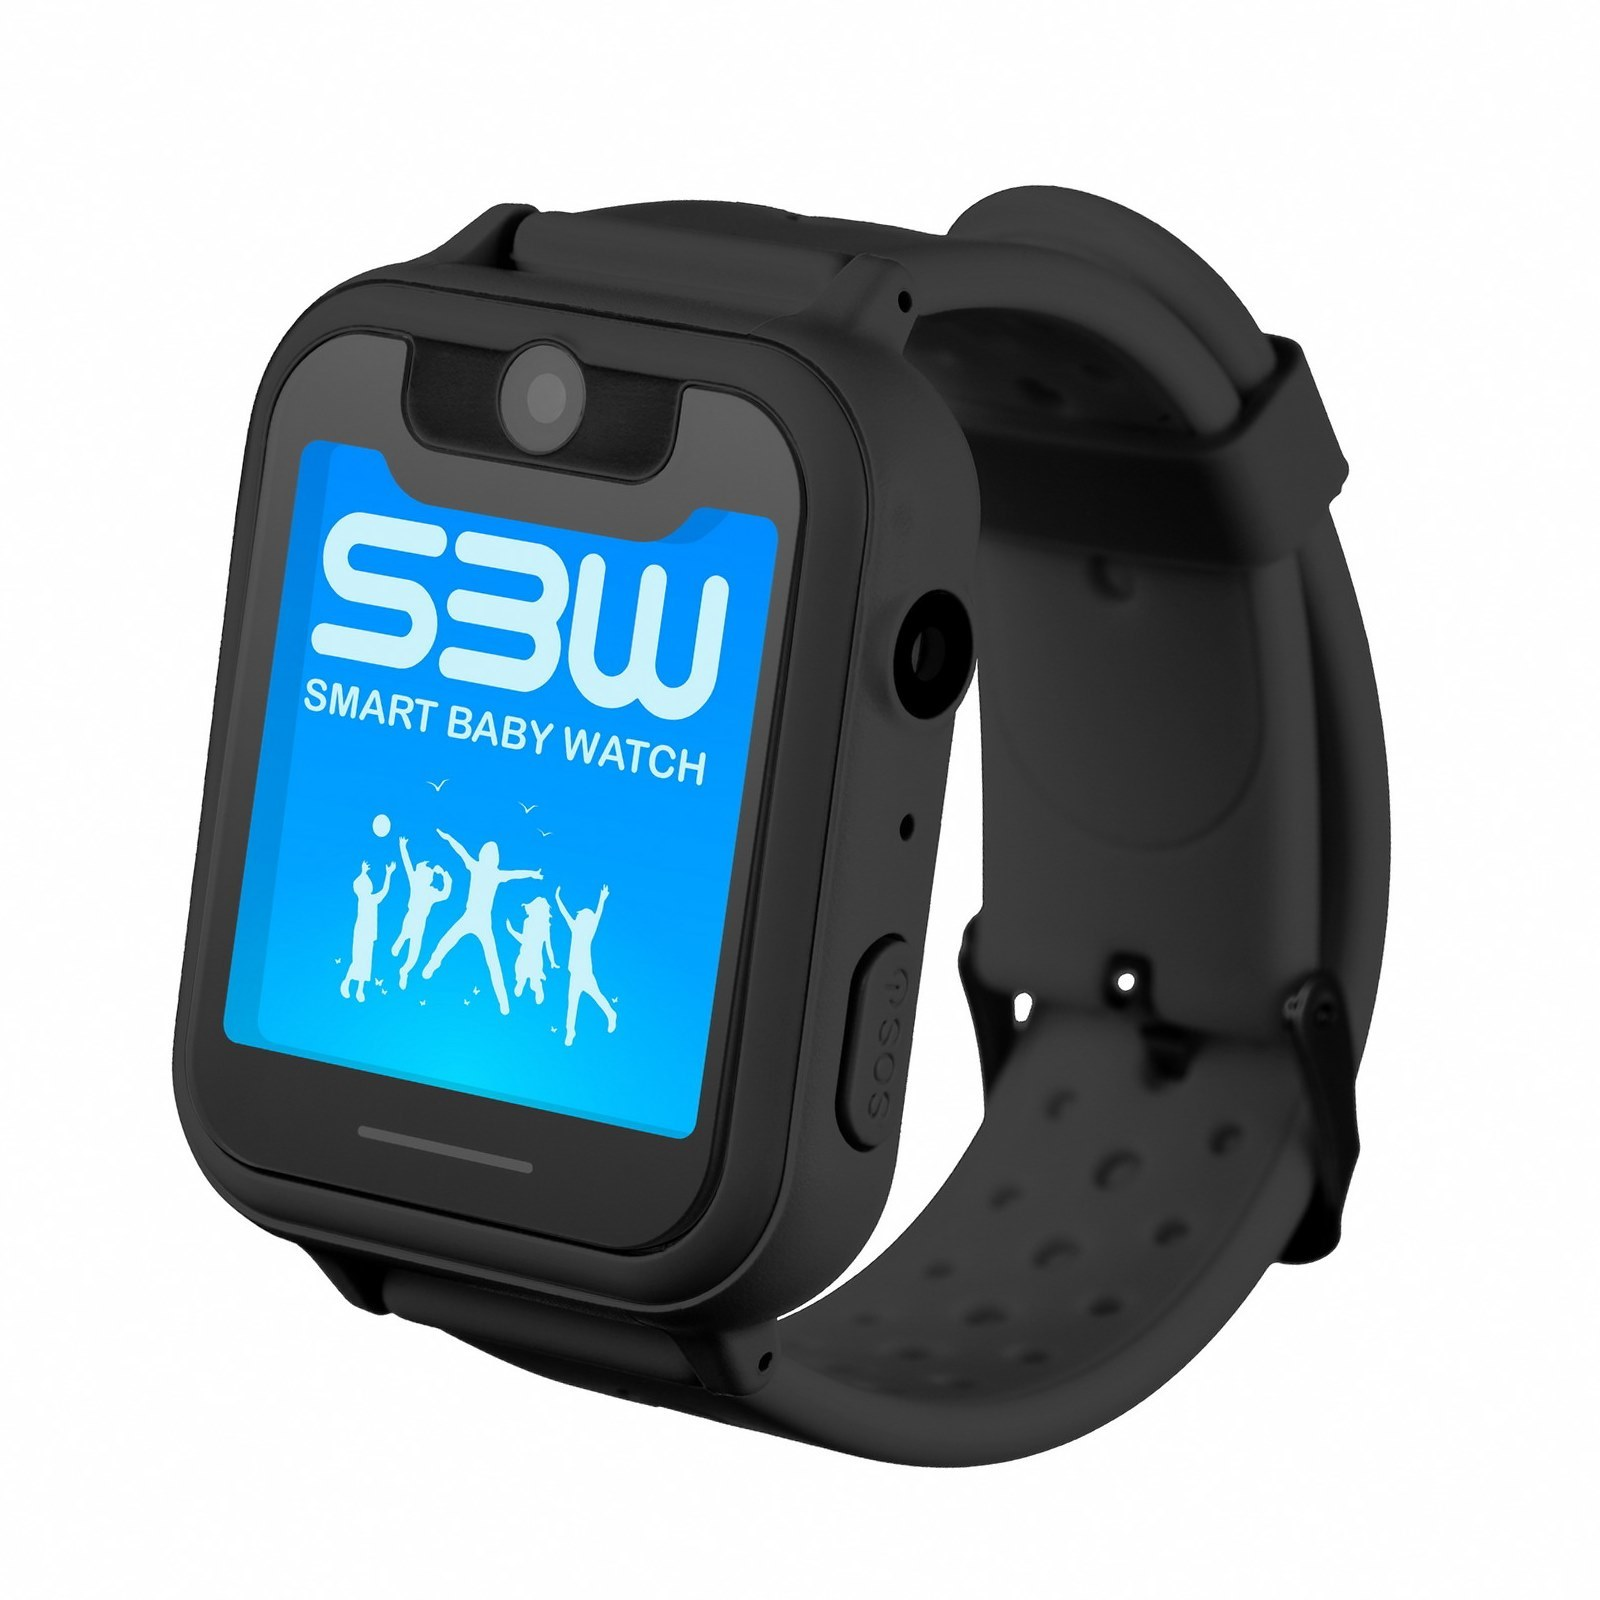 Каталог Детские часы Smart Baby Watch SBW X smart_baby_watch_x__101_.jpg